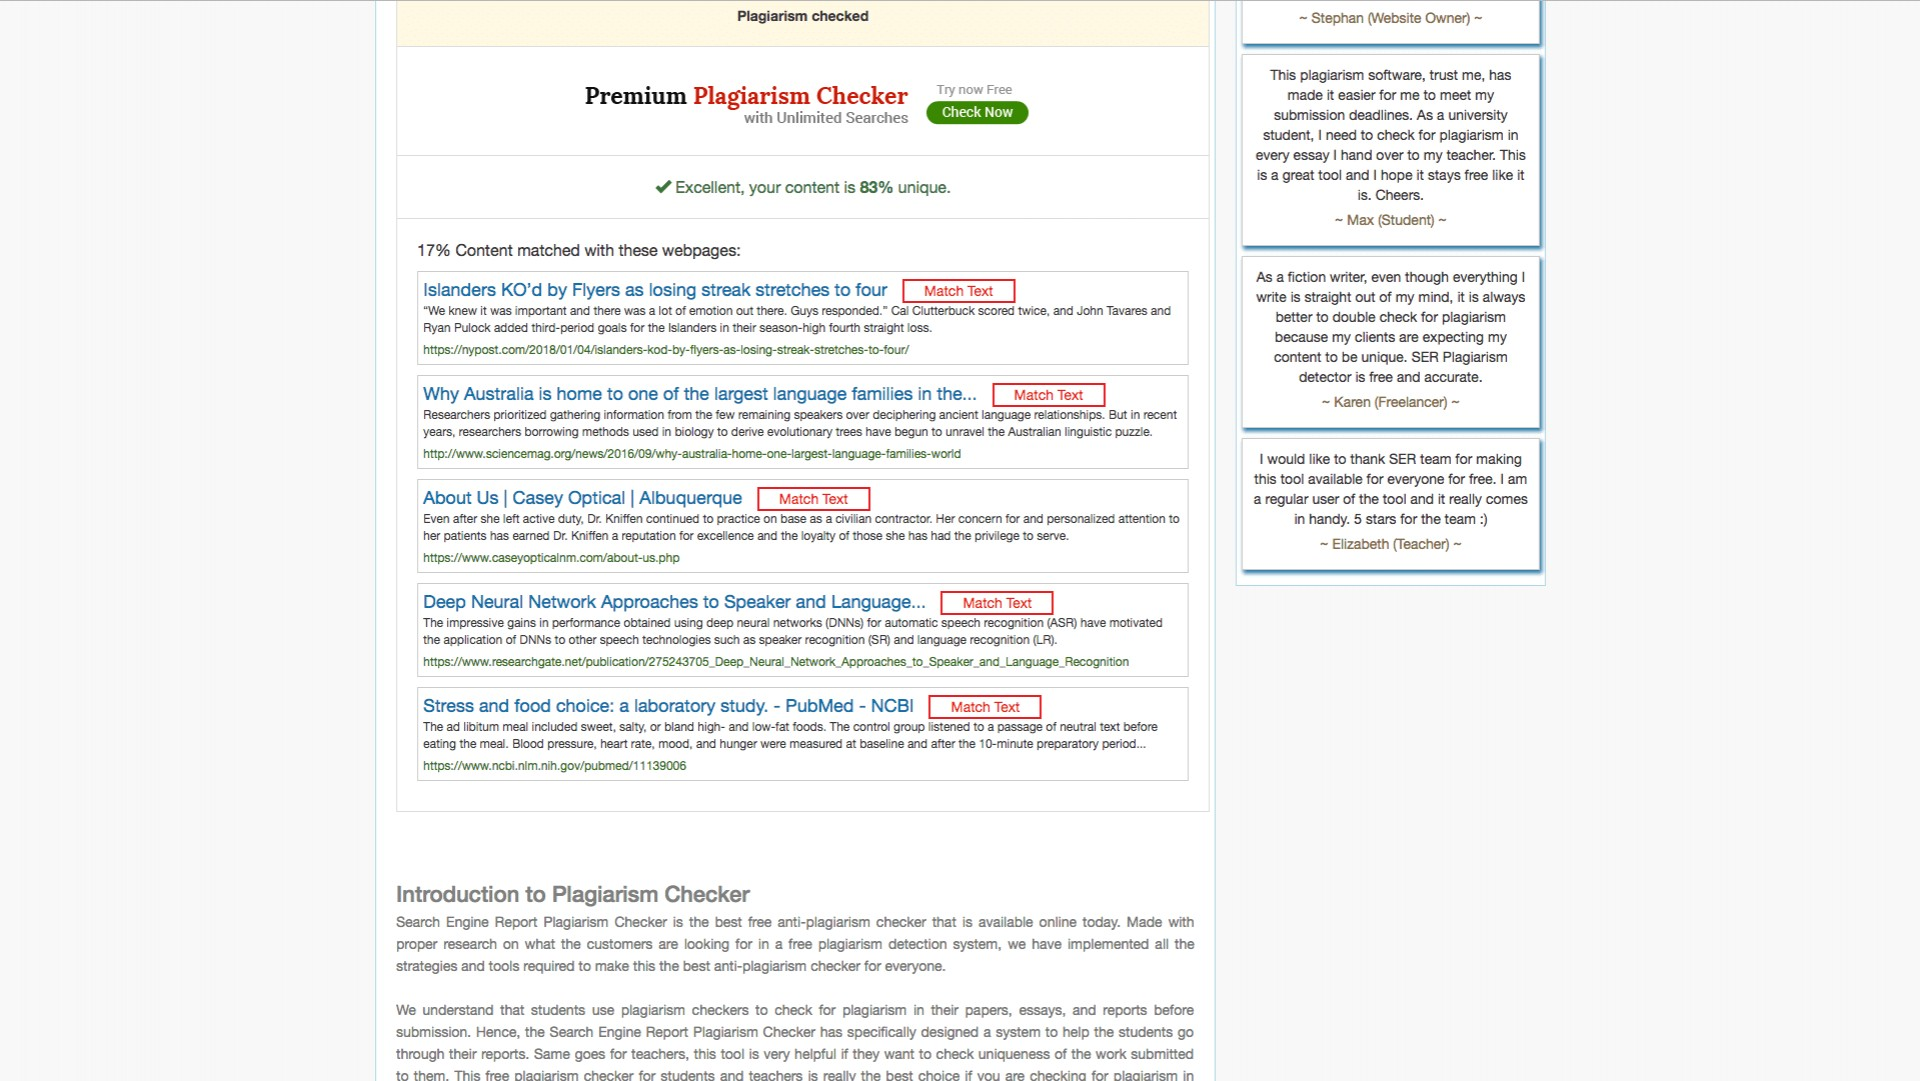 001 Research Paper Searchenginereports Free Online Plagiarism Checker Rare Papers Best For 1920